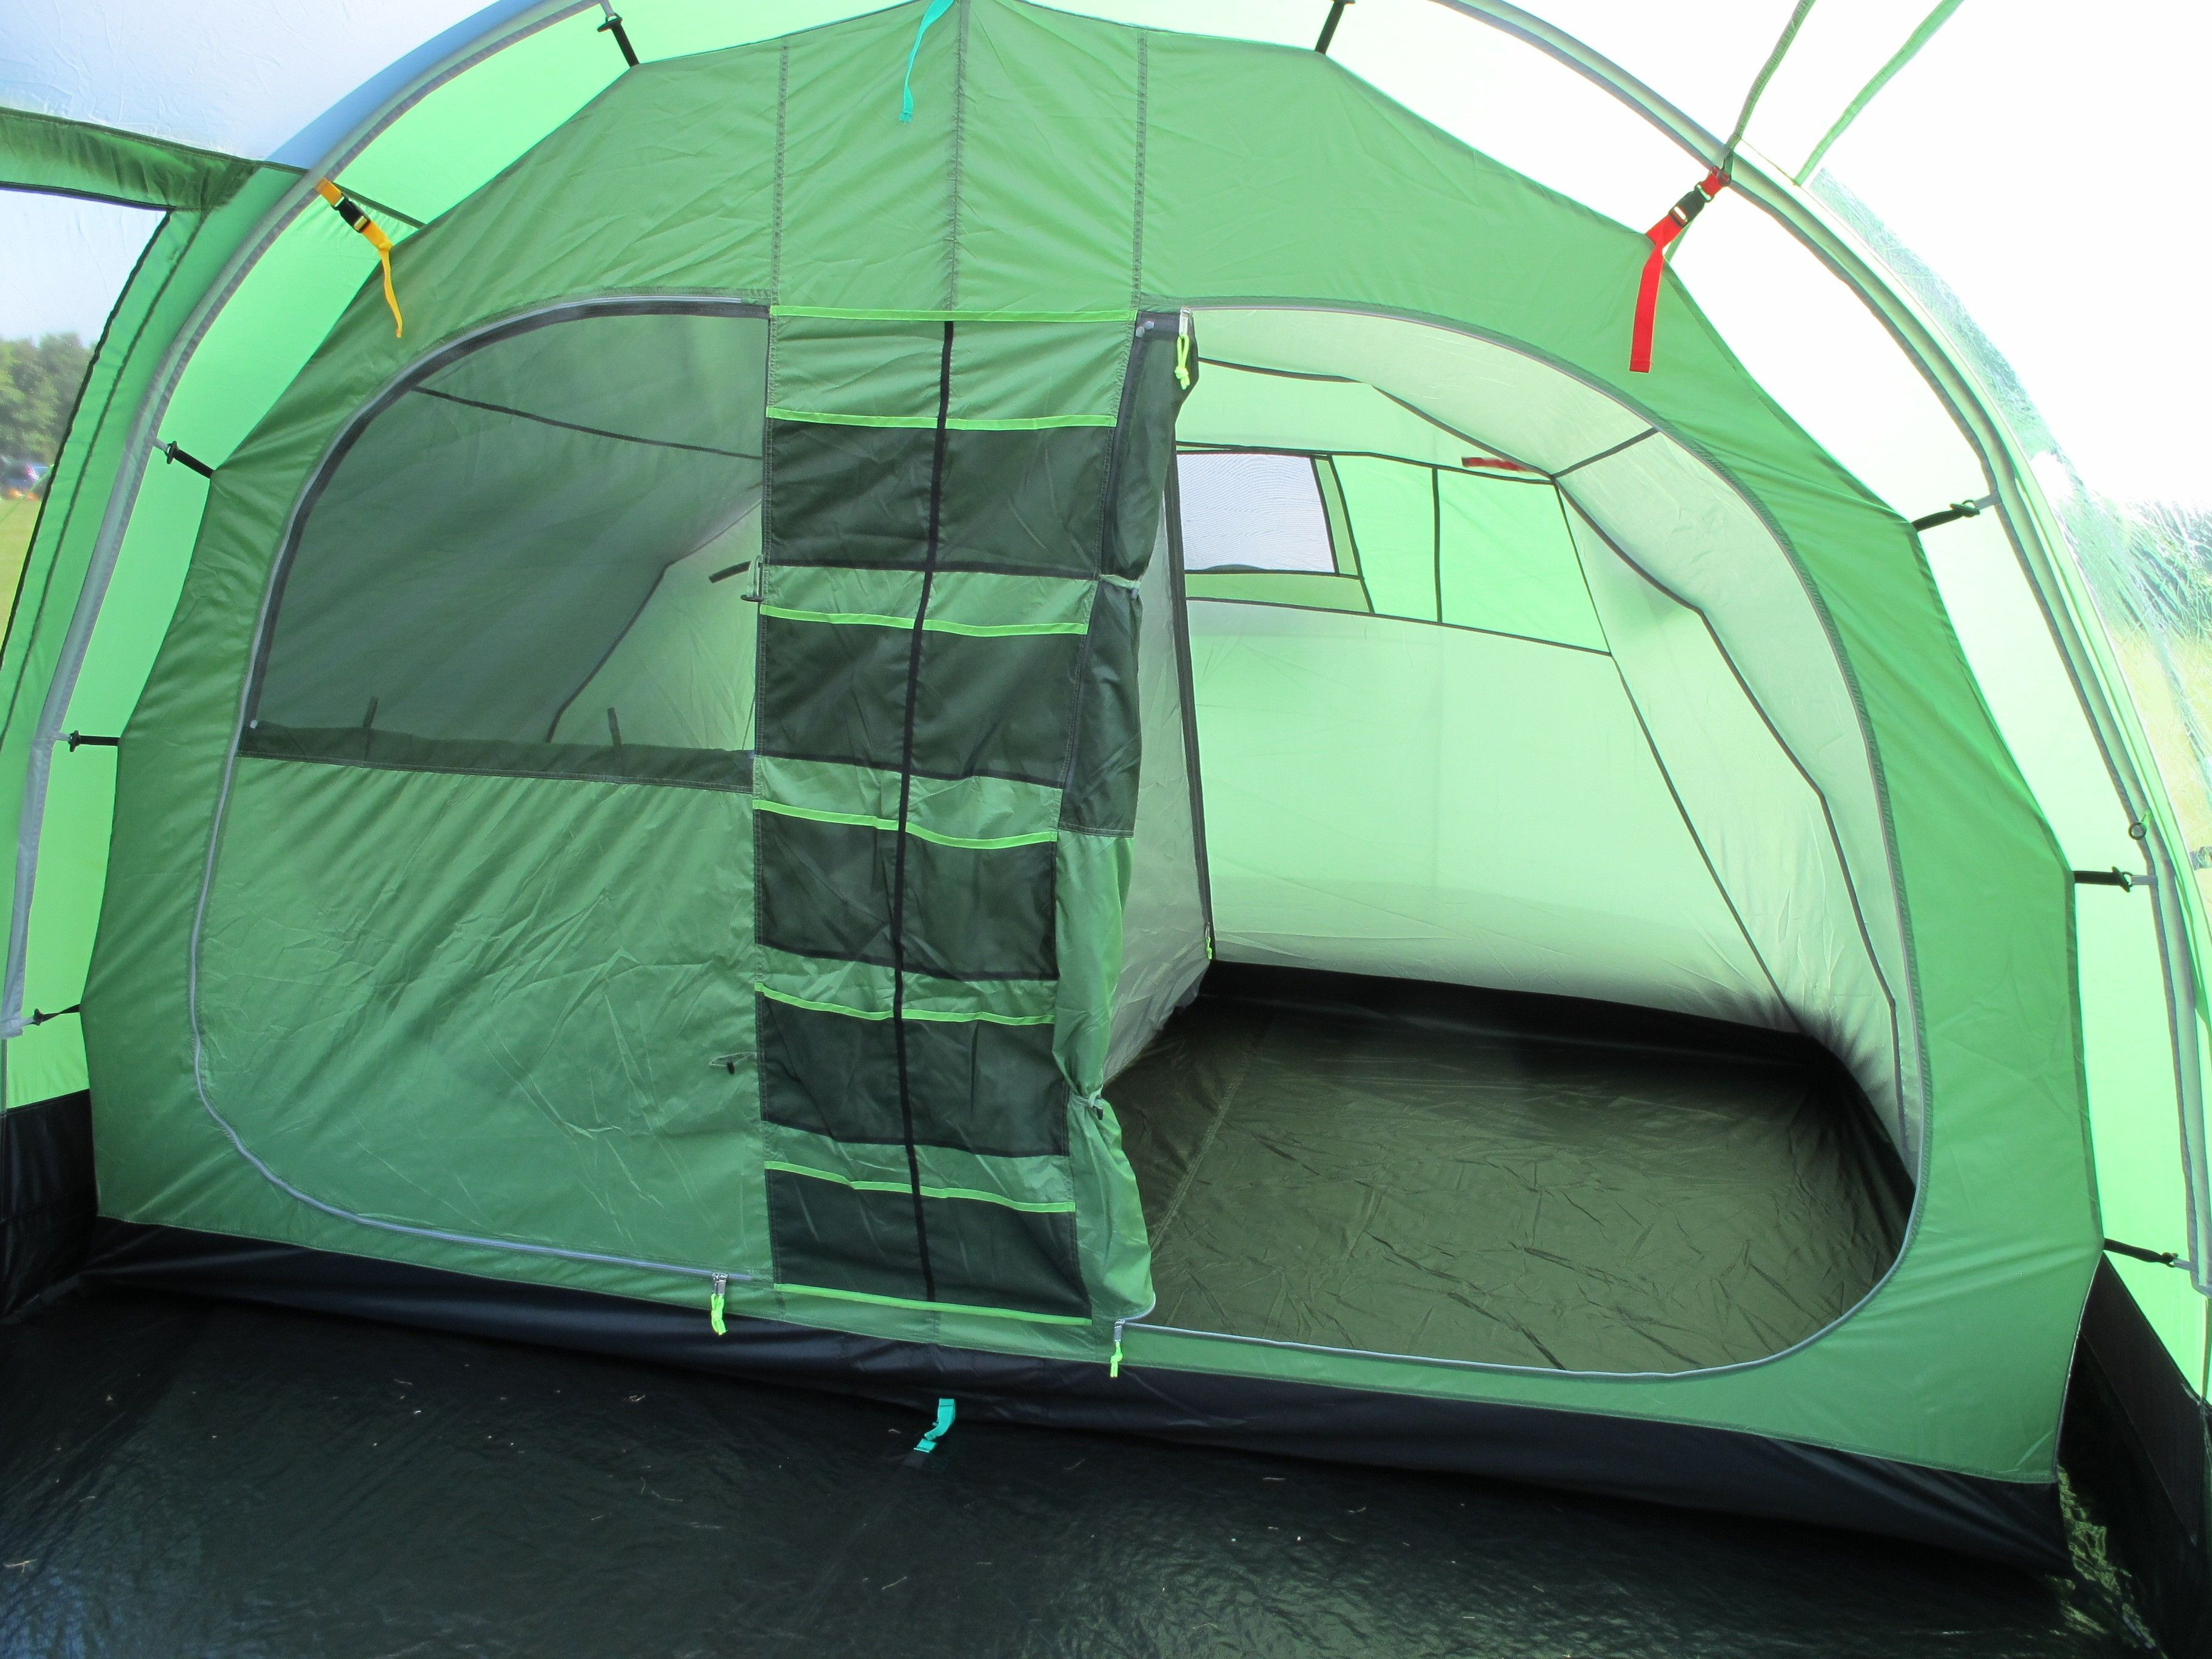 K&a Watergate 8 Family Tunnel tent; mesh pockets are awesome! & Kampa Watergate 8 Family Tunnel tent; mesh pockets are awesome ...